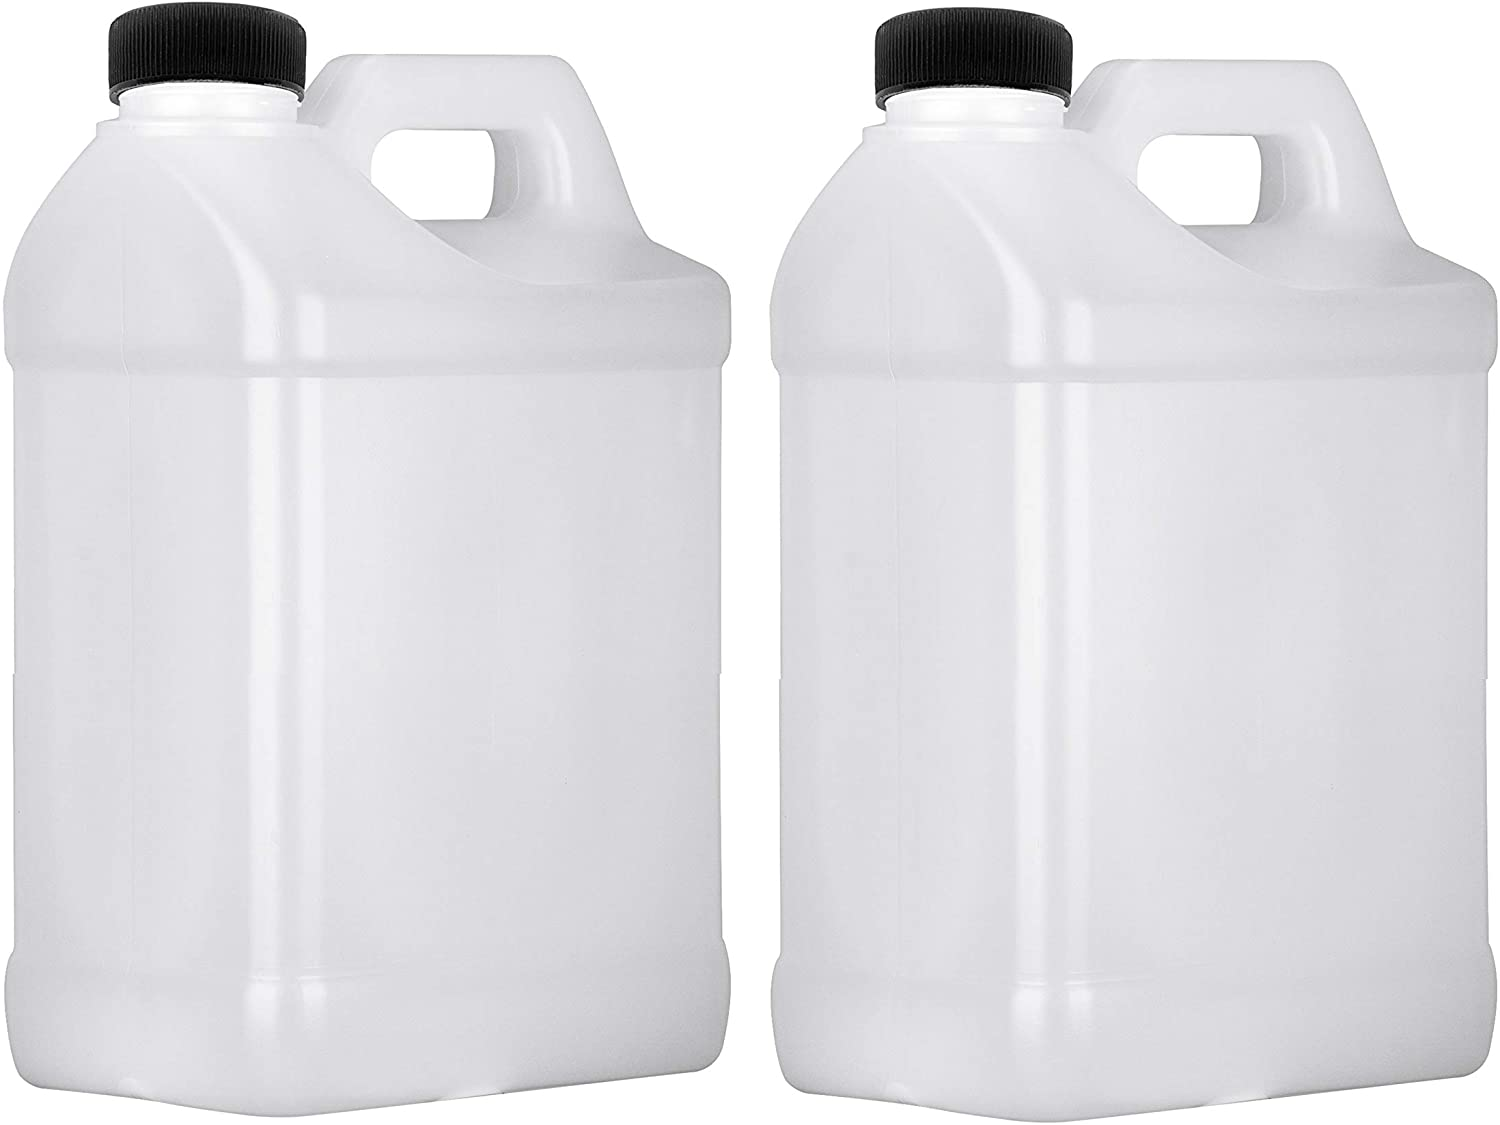 Plastic Jug 1 Gallon, F-Style Storage Containers, HDPE, 2 Pack